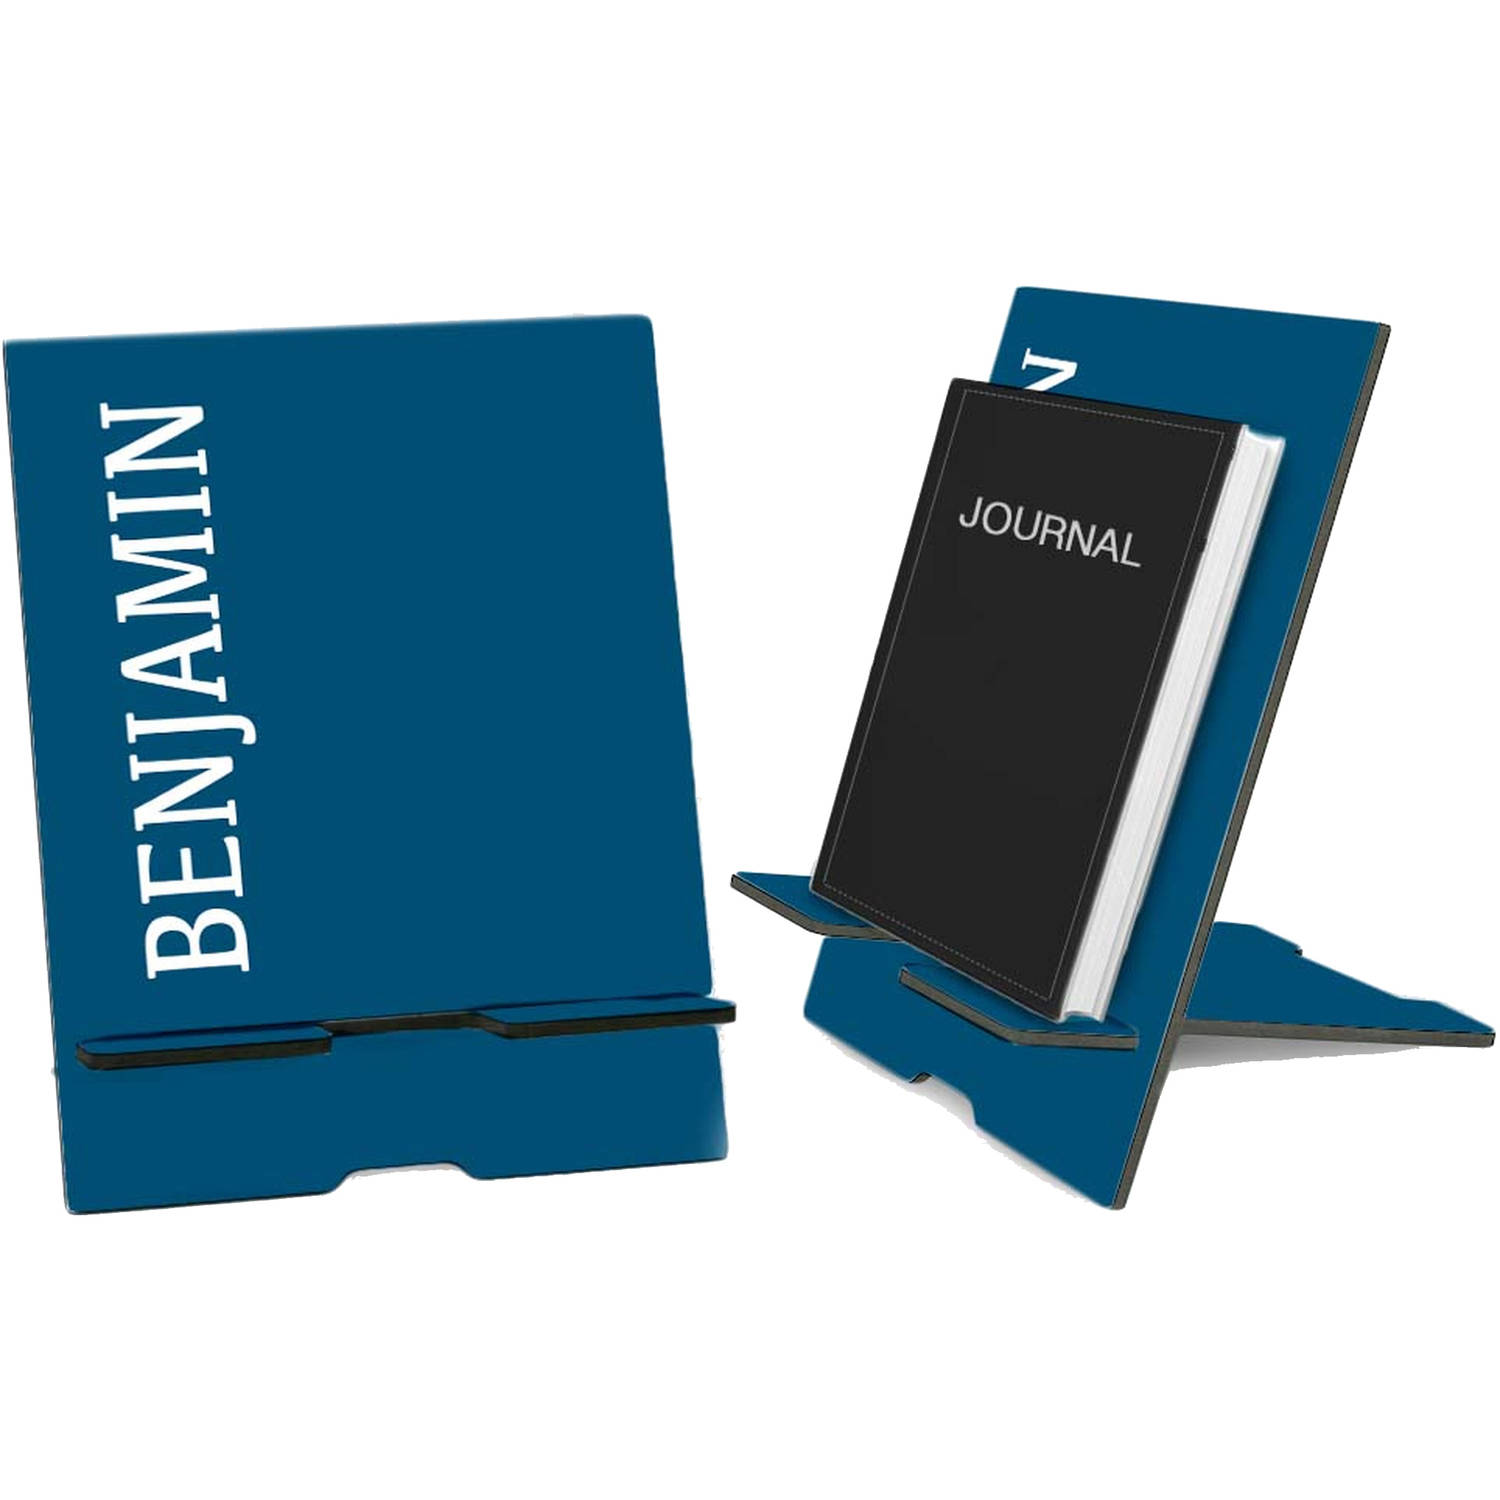 Blue Personalized Book and iPad Stand